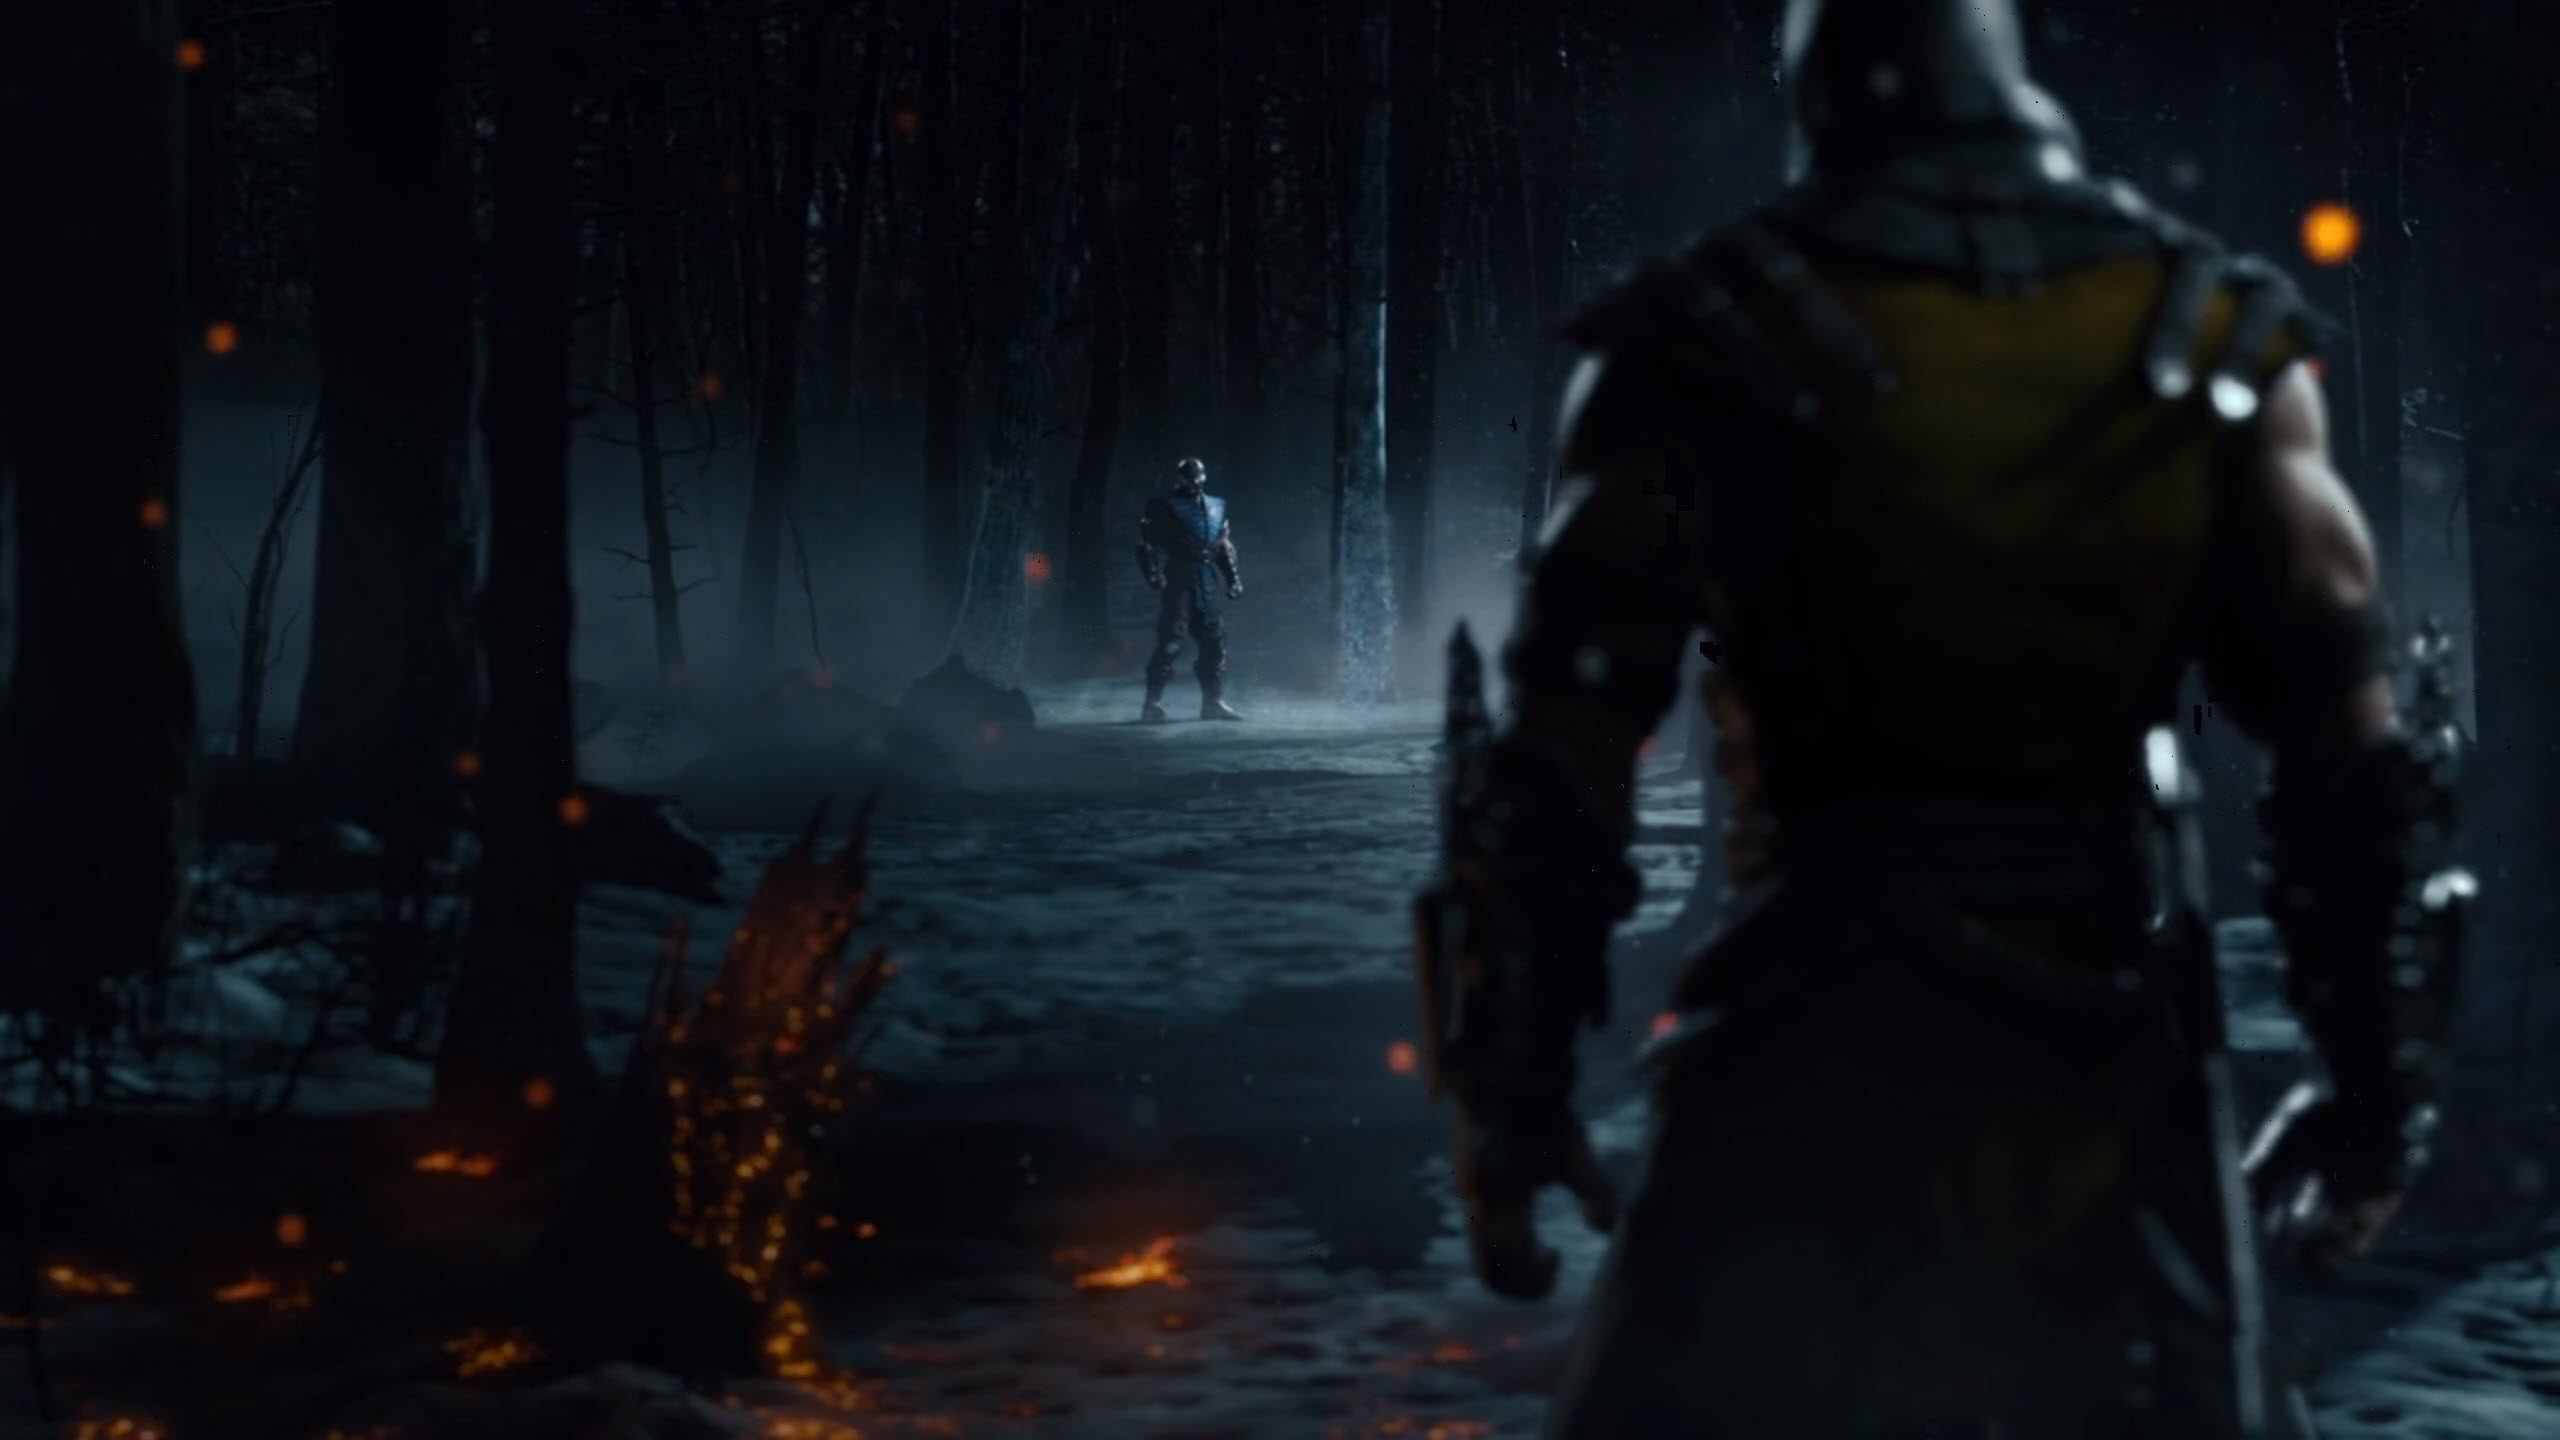 Mortal Kombat X Computer Wallpapers Desktop Backgrounds 2560x1440 2560x1440